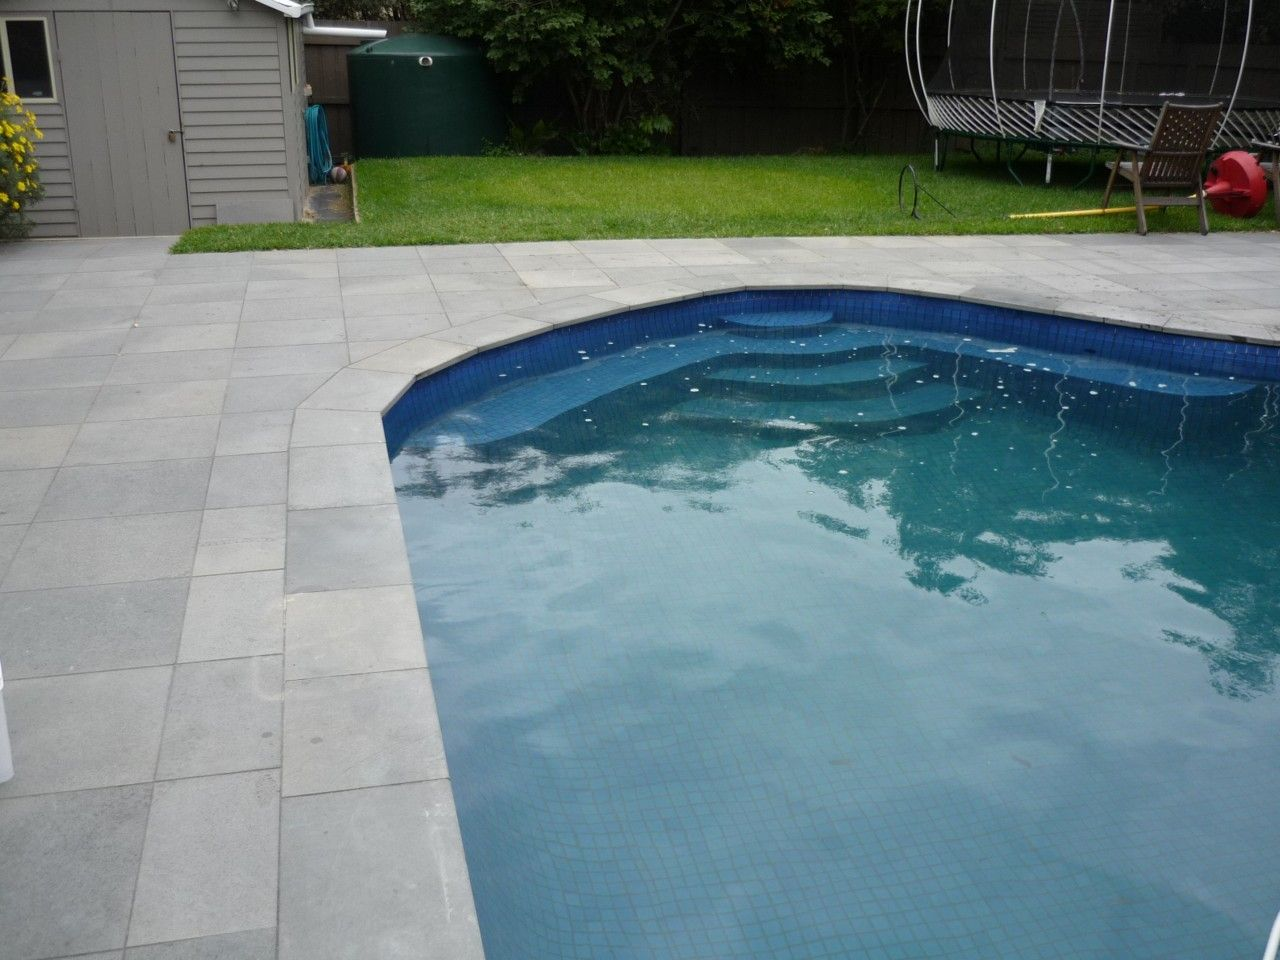 Pool Coping Tiles Brisbane Tile Design Ideas